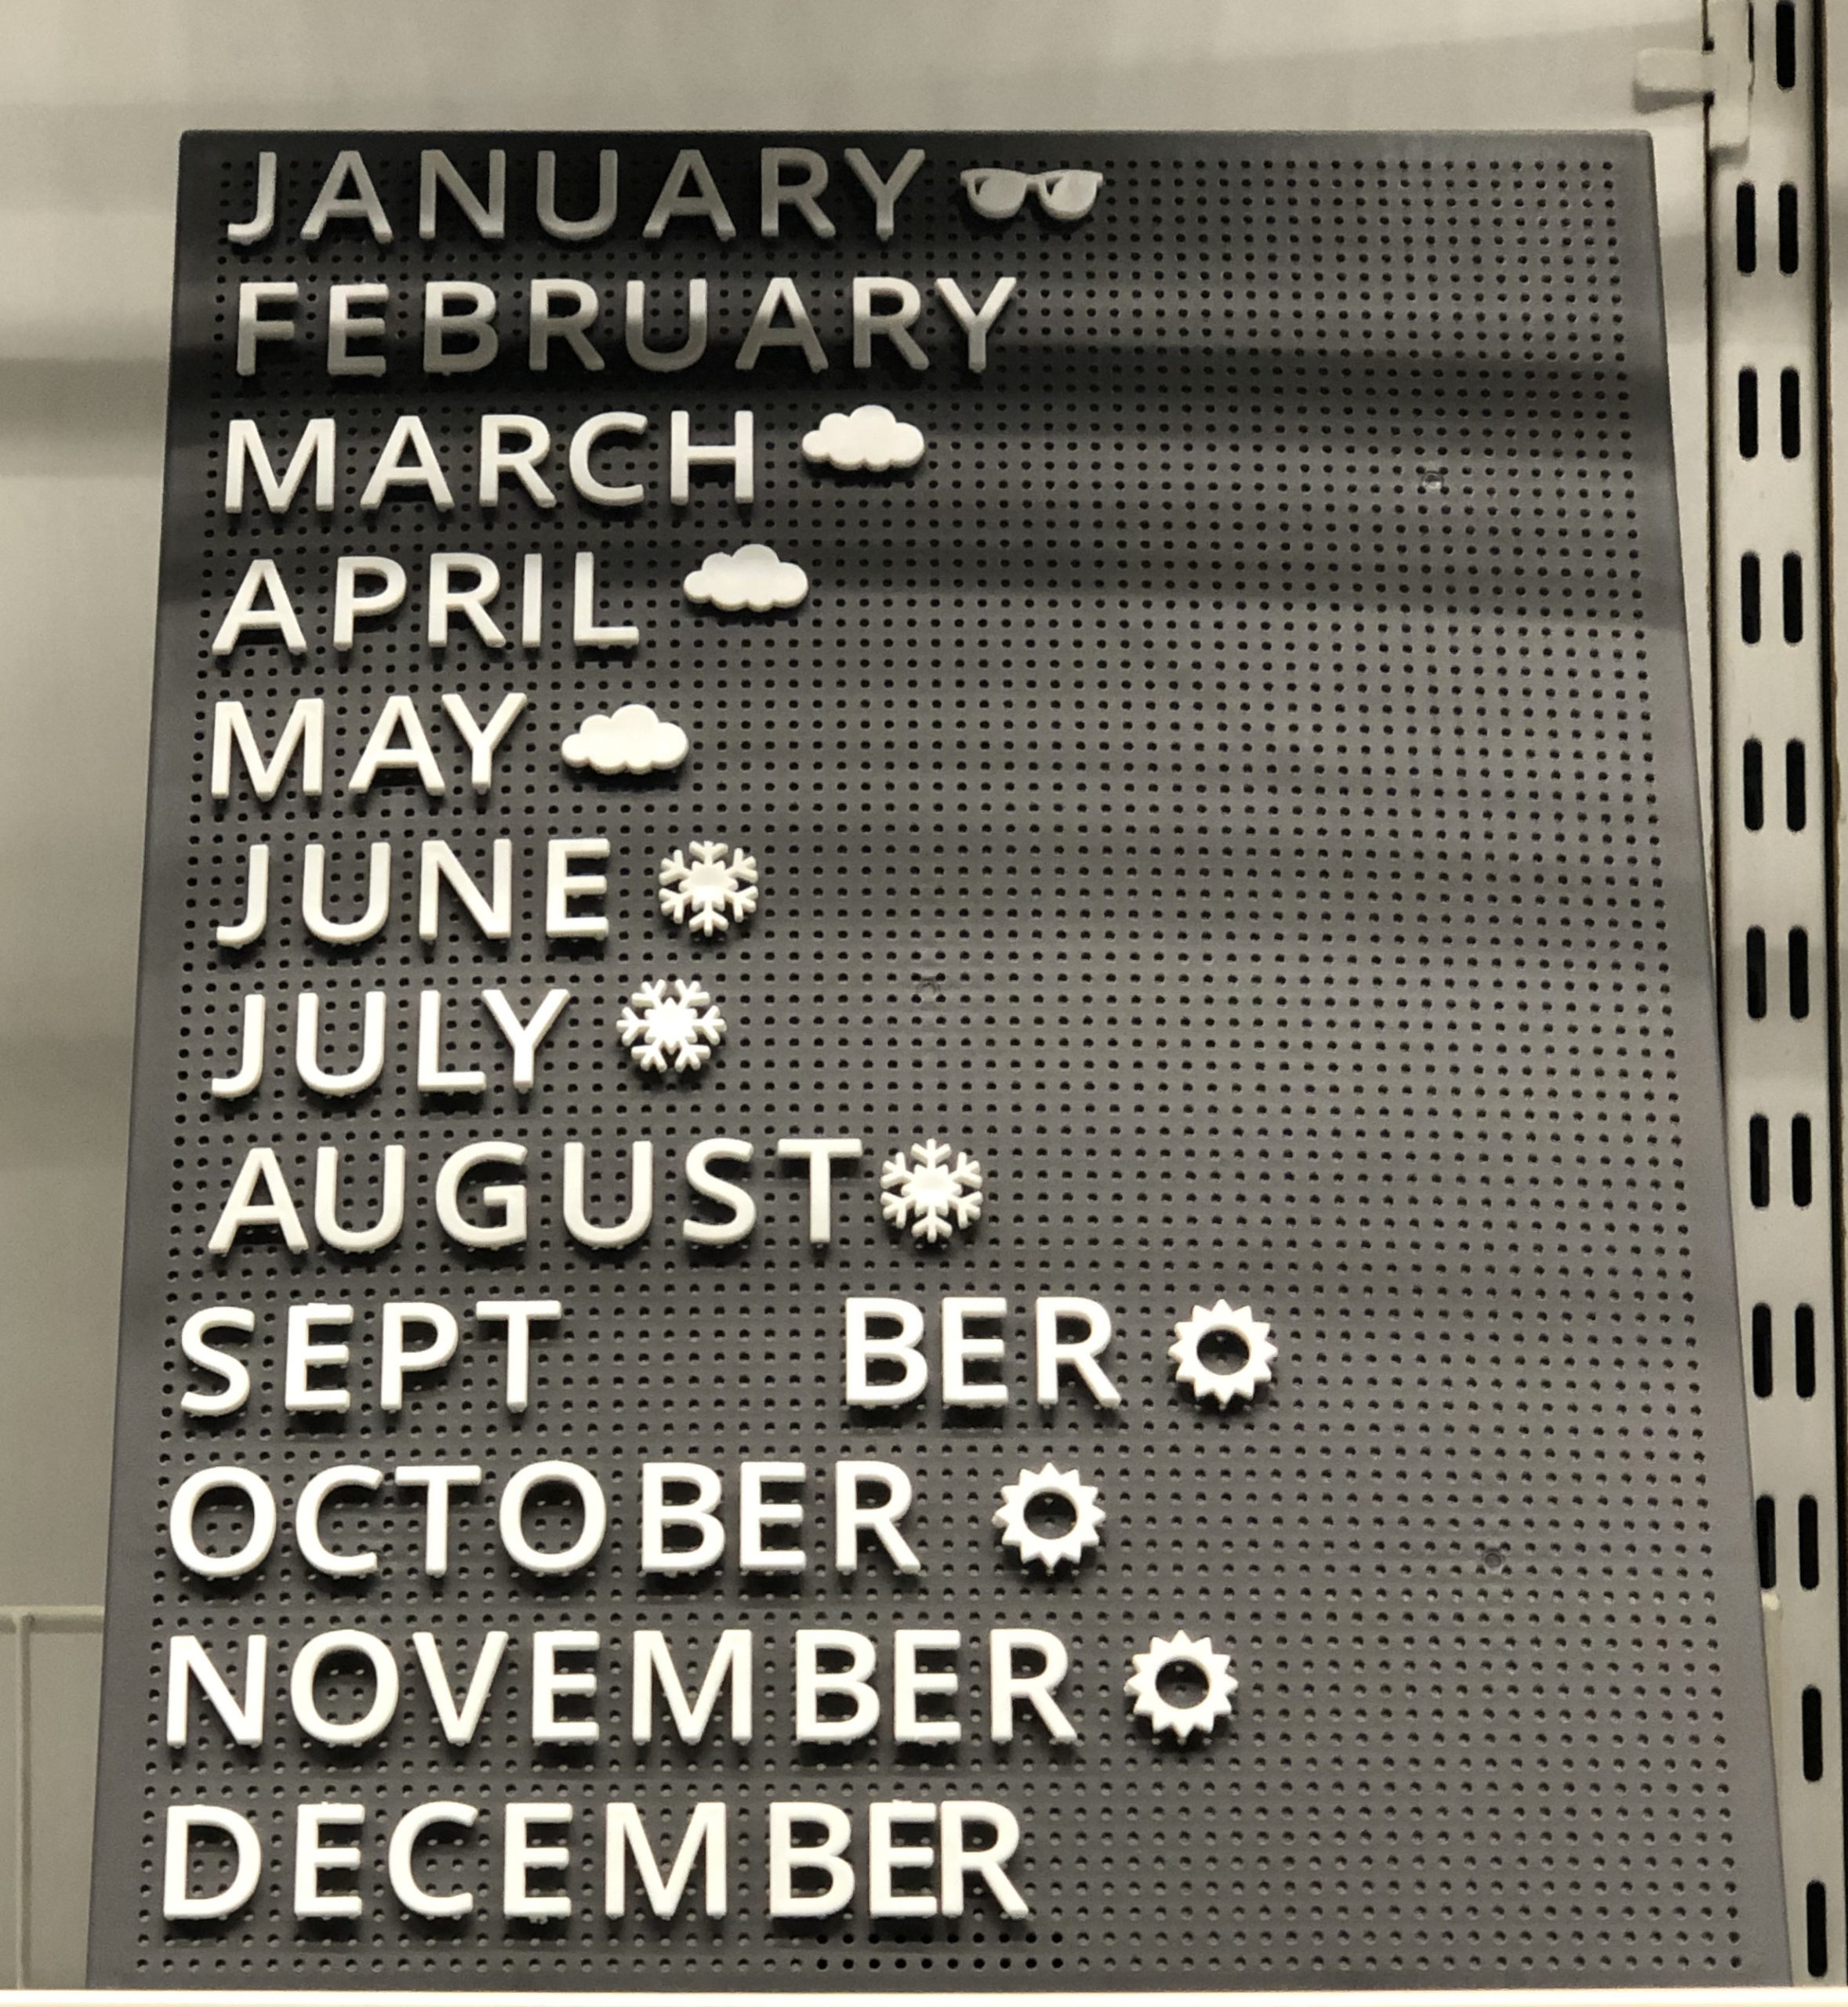 sign with Aussie-appropriate symbols next to month names - sunglasses in January, snowflake in July